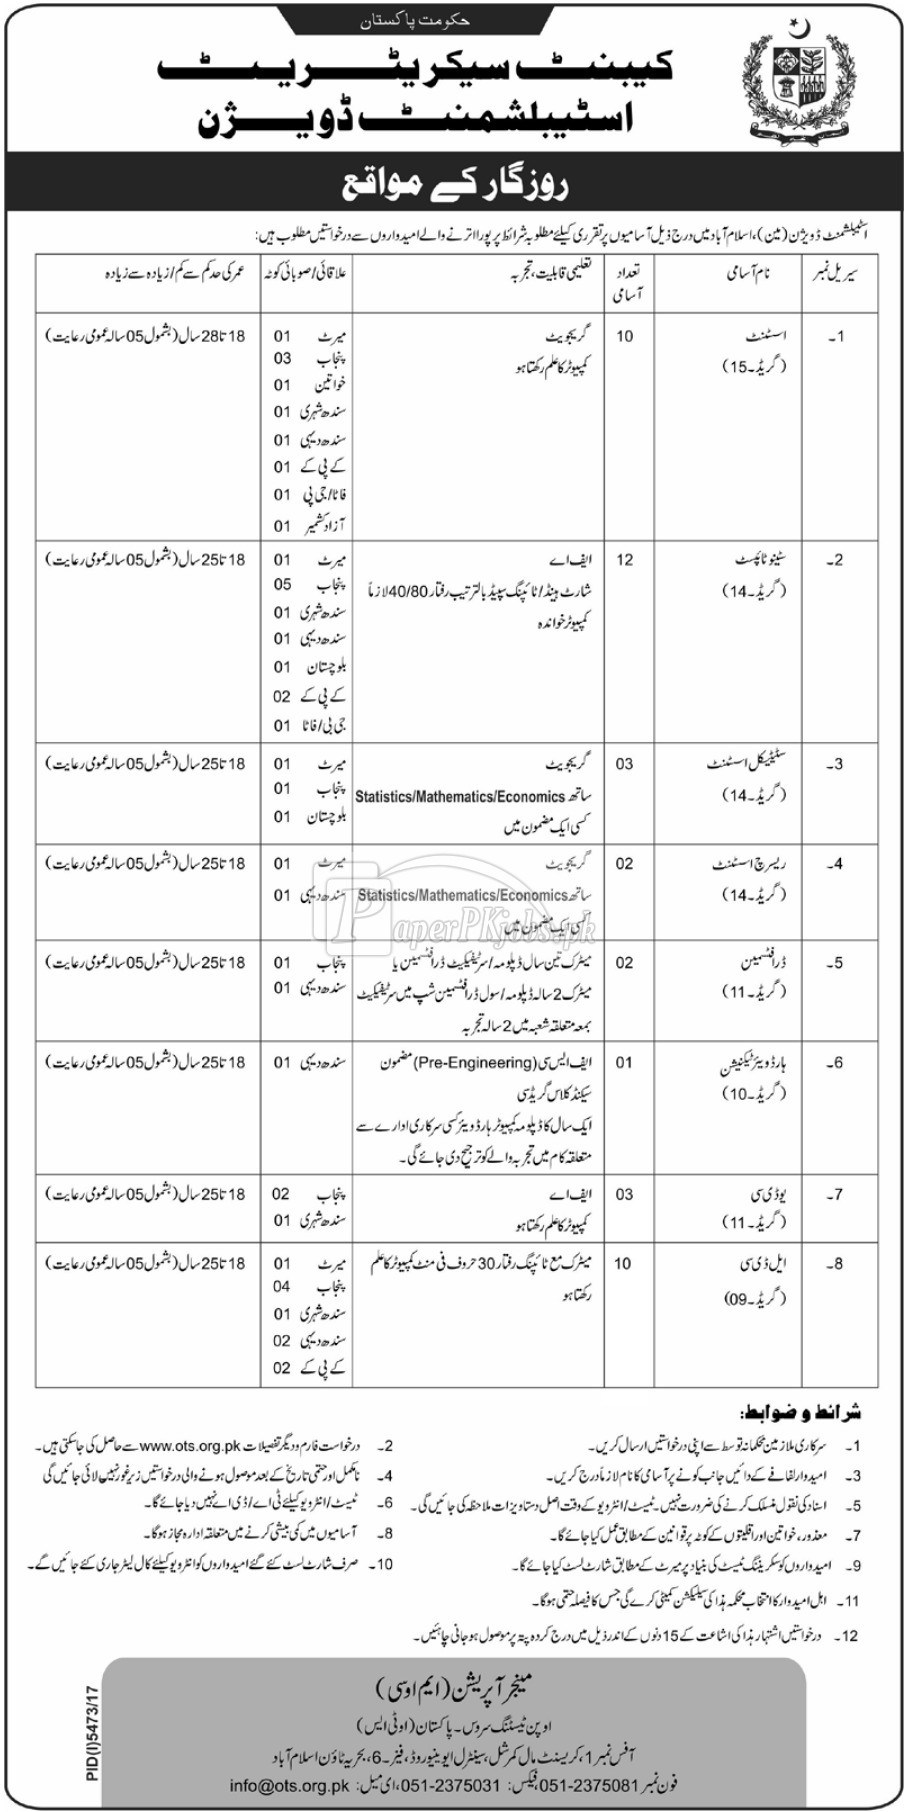 Cabinet Secretariat Establishment Division Islamabad Jobs 2018